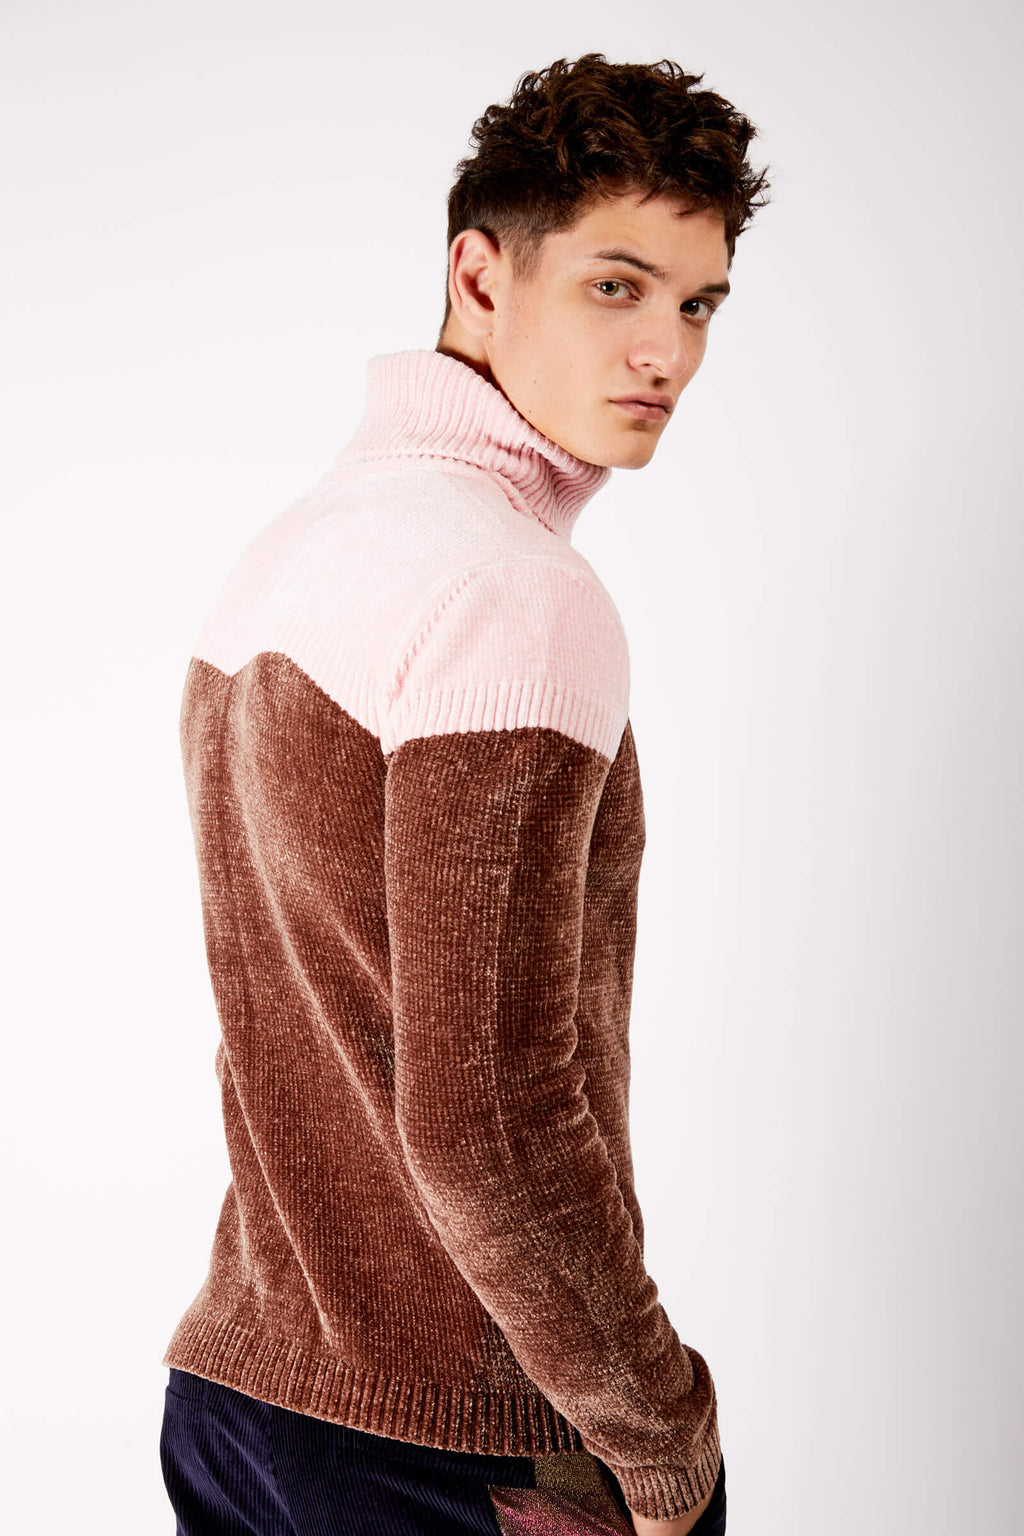 Adrian Unisex Pink and Brown Chenille Turtleneck Sweater